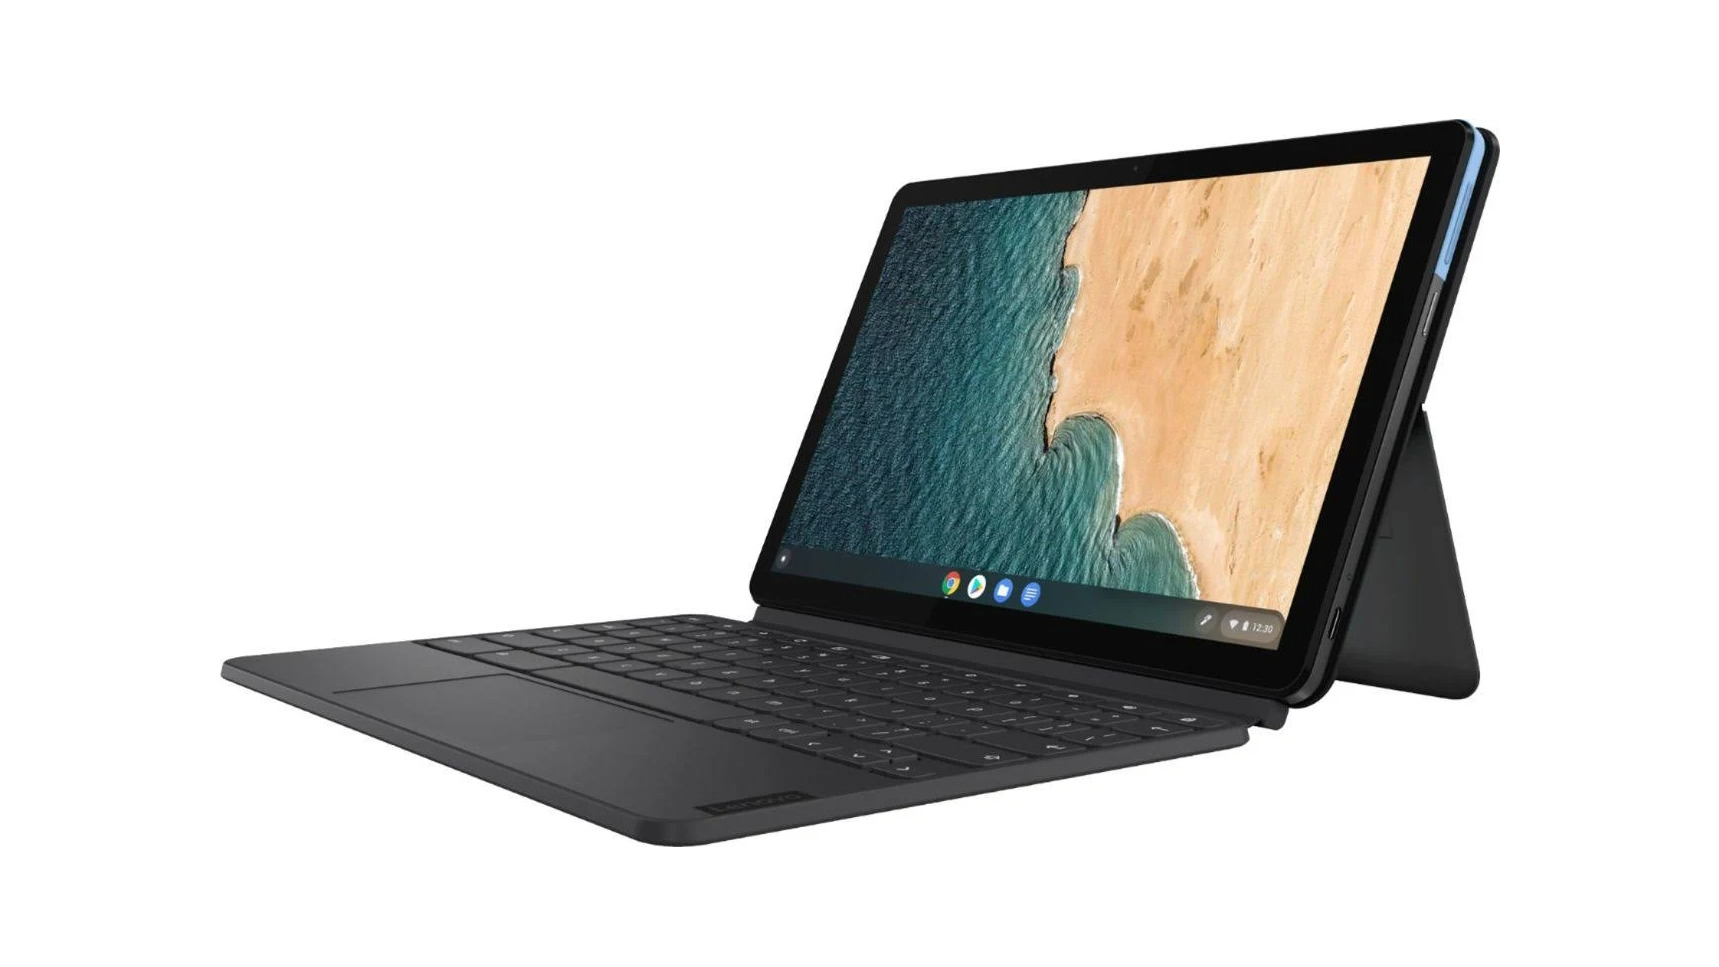 Lenovo Ideapad Duet Chromebook at an angle on a white background